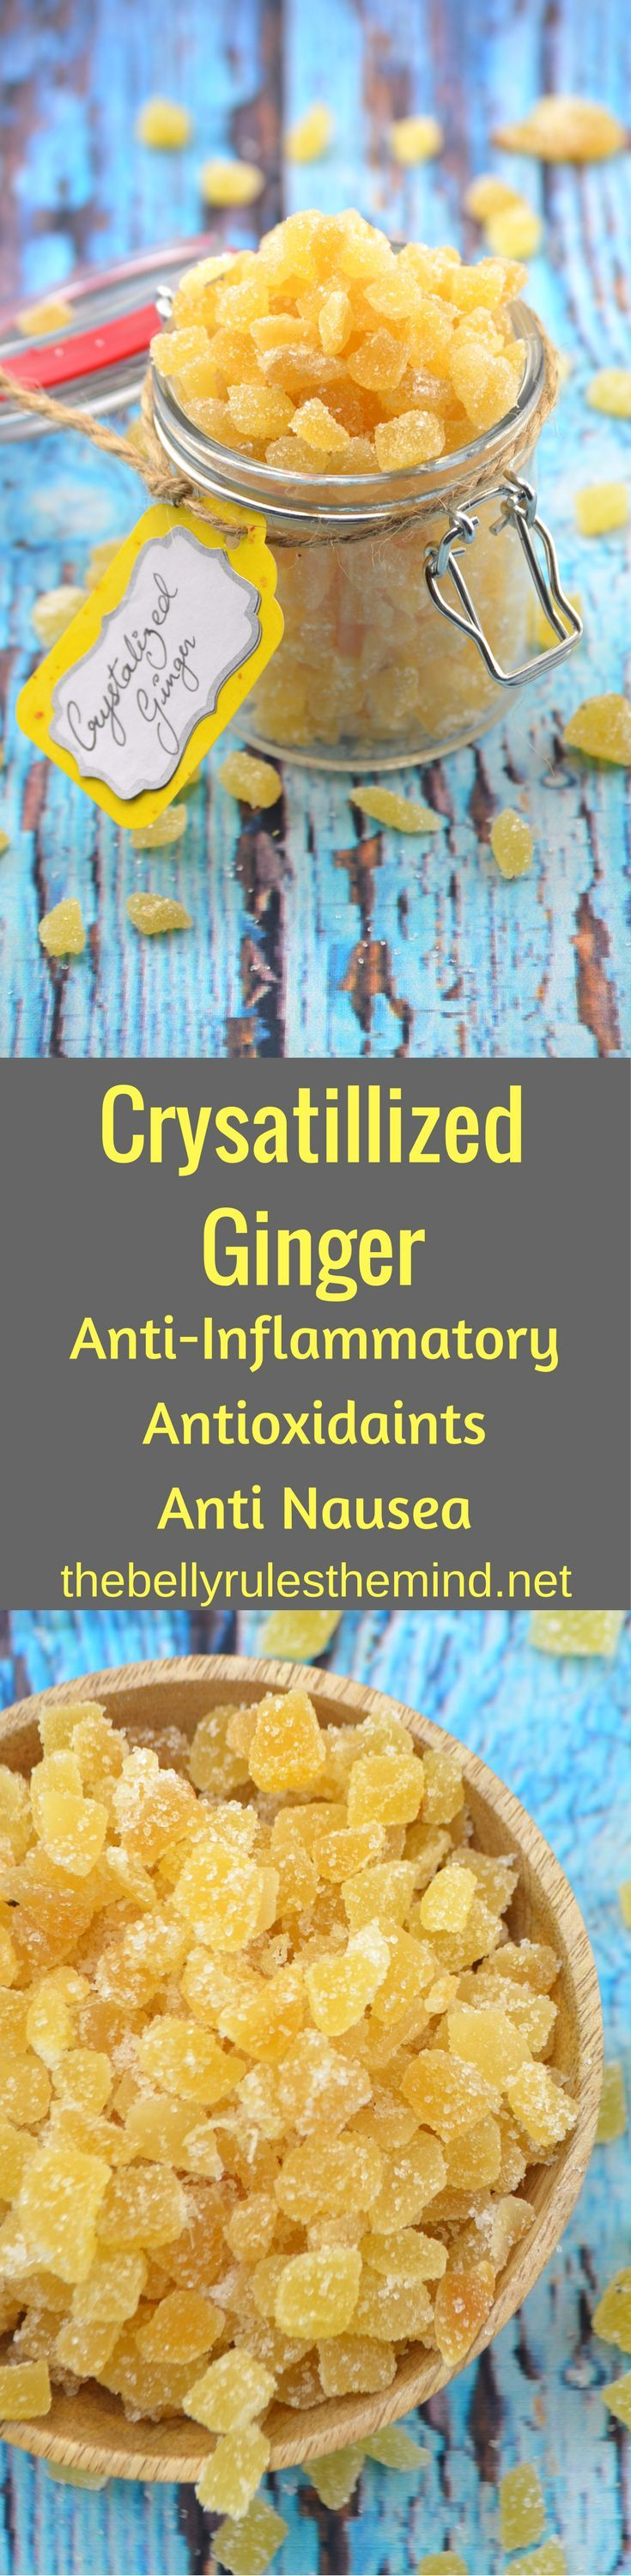 Try our Crystallized Ginger,this has numerous therapeutic properties including antioxidant effects, immune boosting abilities and it is a natural anti inflammatory!  @bellyrulesdmind